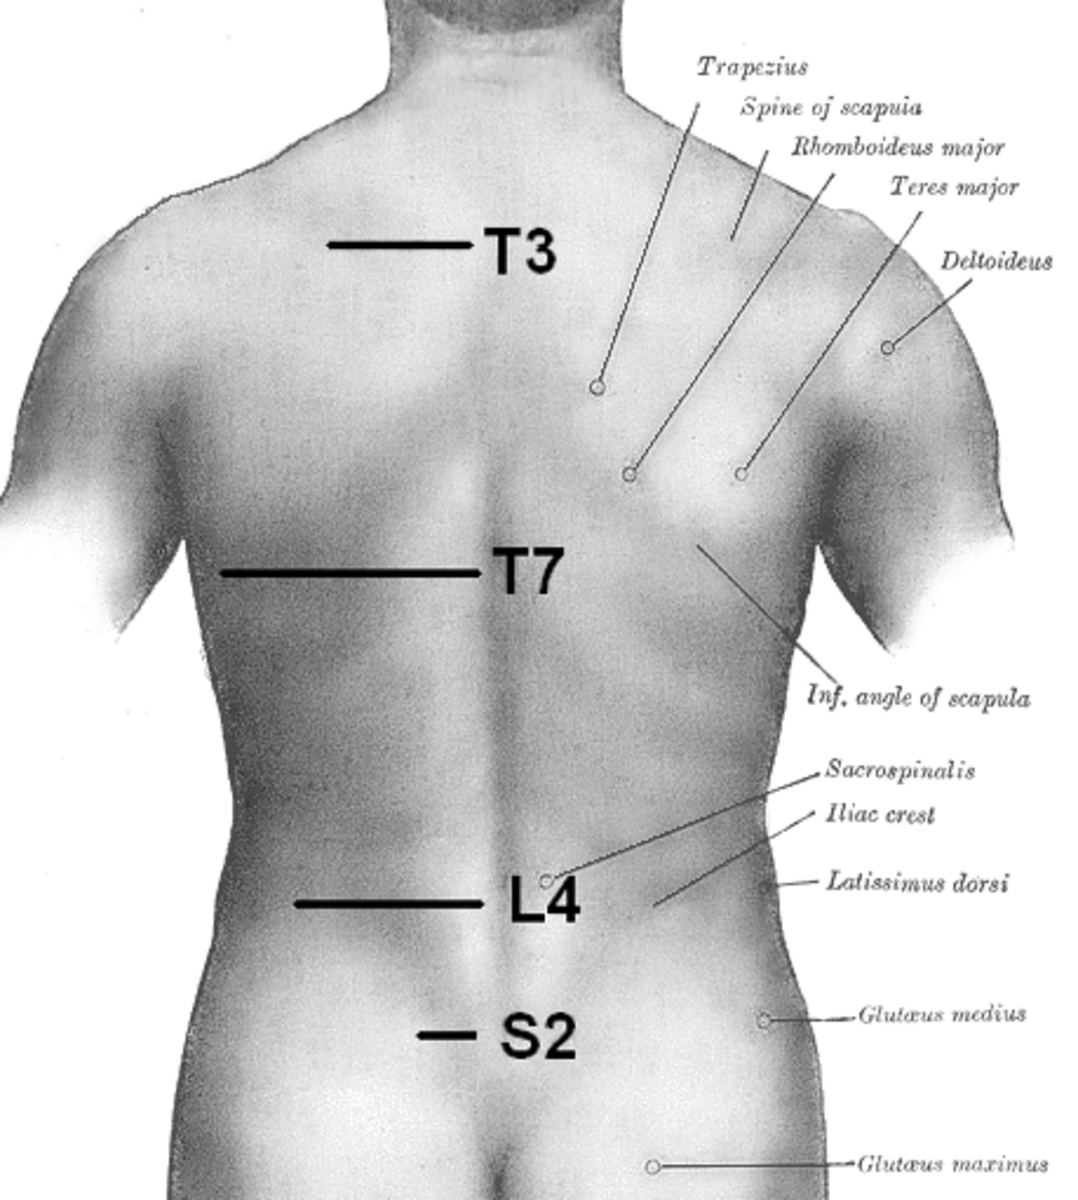 S2 is the area in which many walking muscles connect to the back of the pelvic cradle. The iliac crest is the other easily accessible spot where many muscles connect.